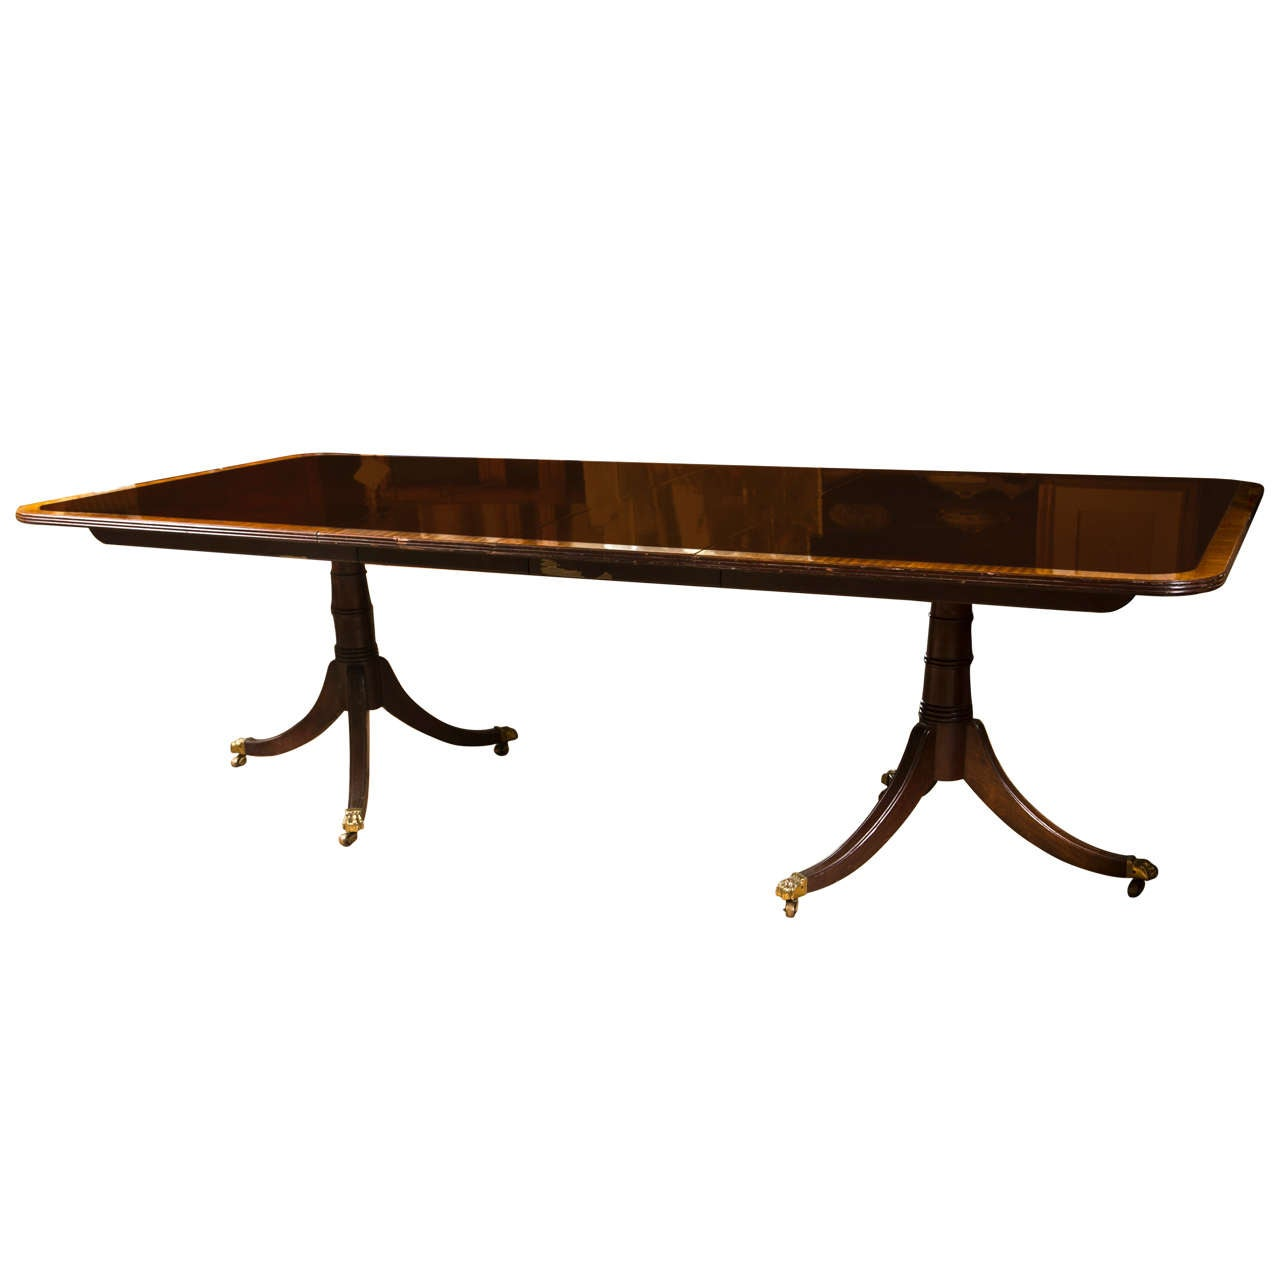 Regency style banded mahogany dining table by stickley at for Styling a dining table